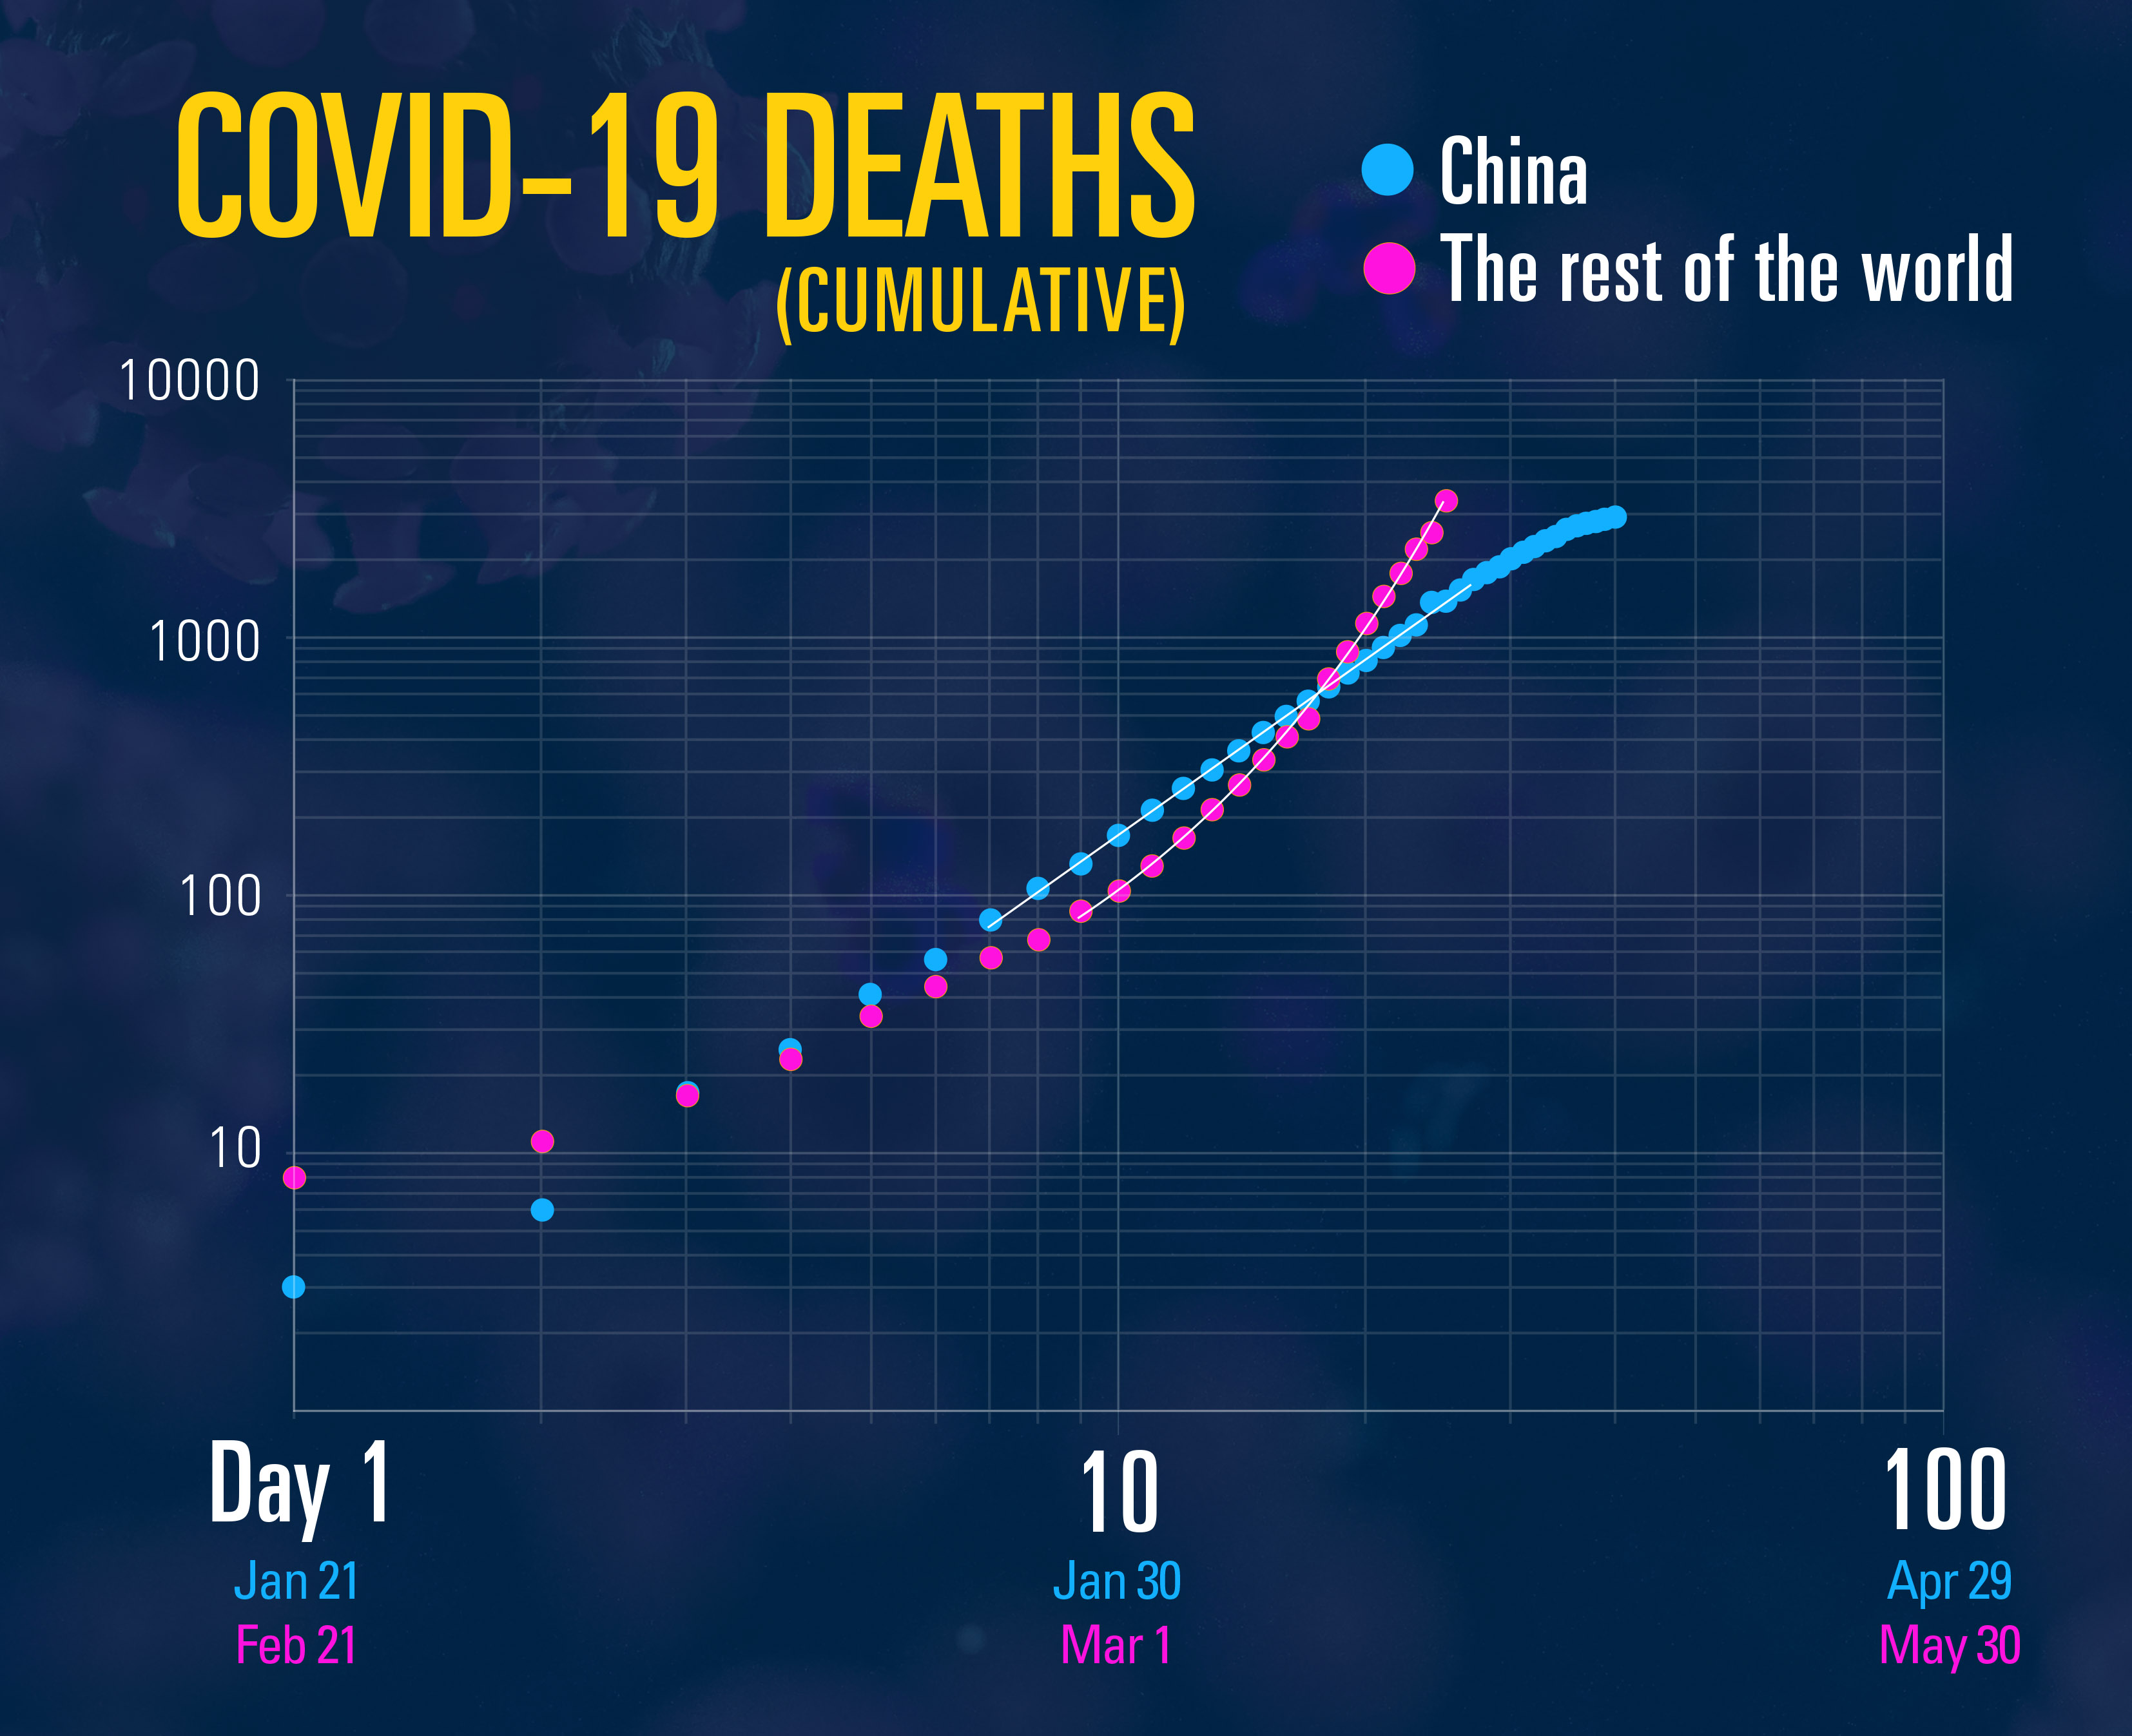 The deaths in China changed from exponential (curved) growth to the straight line of a power law before tapering off. Meanwhile, deaths outside China continue to follow an exponential curve. This shows that while the virus is being successfully managed in China, it is essentially uncontrolled in the rest of the world. Robert and Anna Ziff applied logarithmic scales to both the days axis and the death axis to make the difference between exponential and power law growth easier to see. Data source: World Health Organization. Image credit: Steve Alvey/University of Michigan Engineering